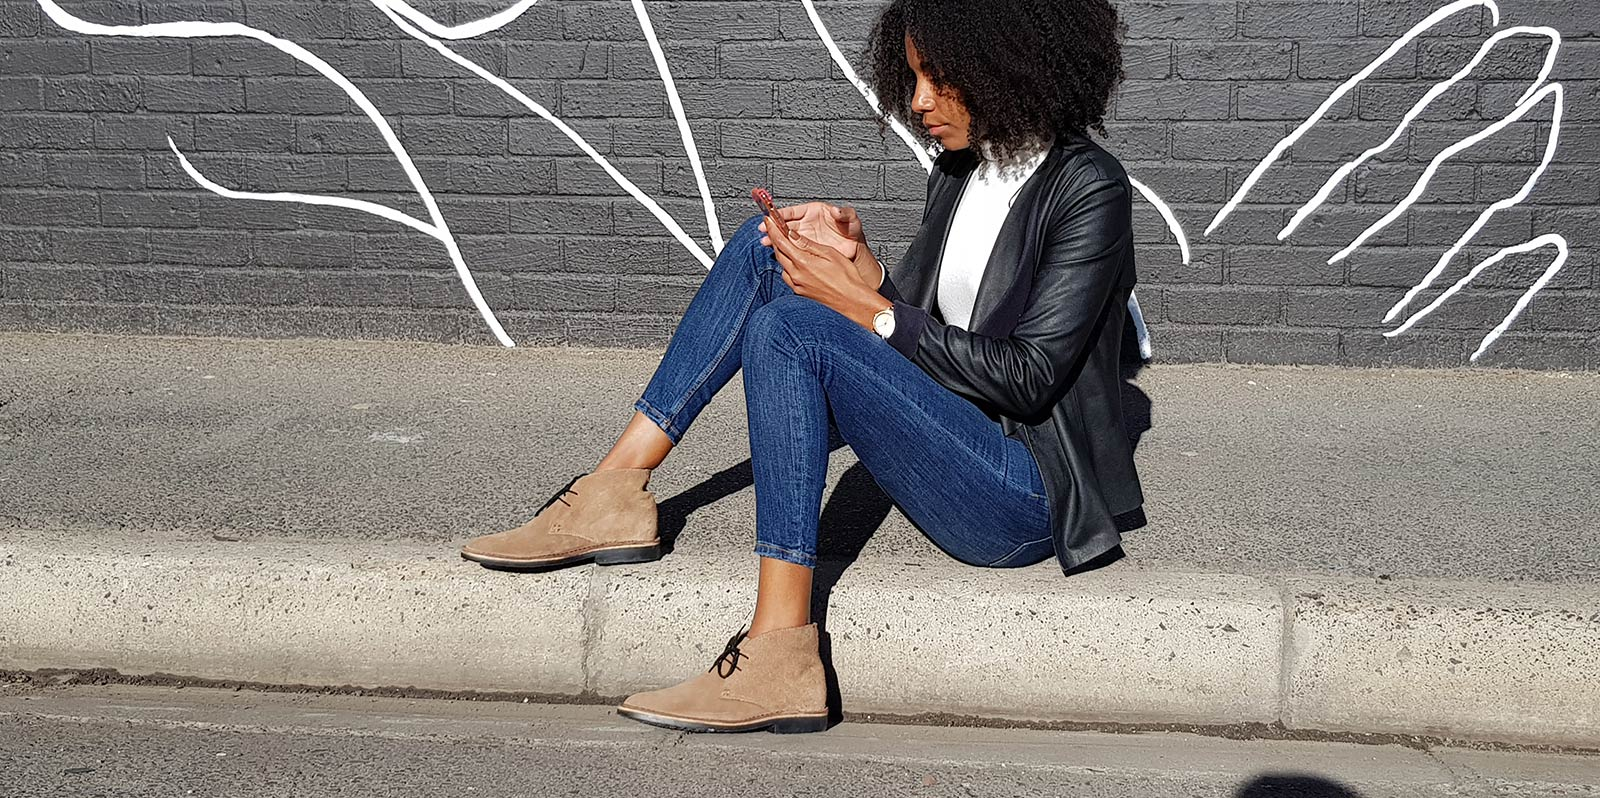 bf34496d3a Veldskoen Shoes®   Ethically Handcrafted Shoes From South Africa